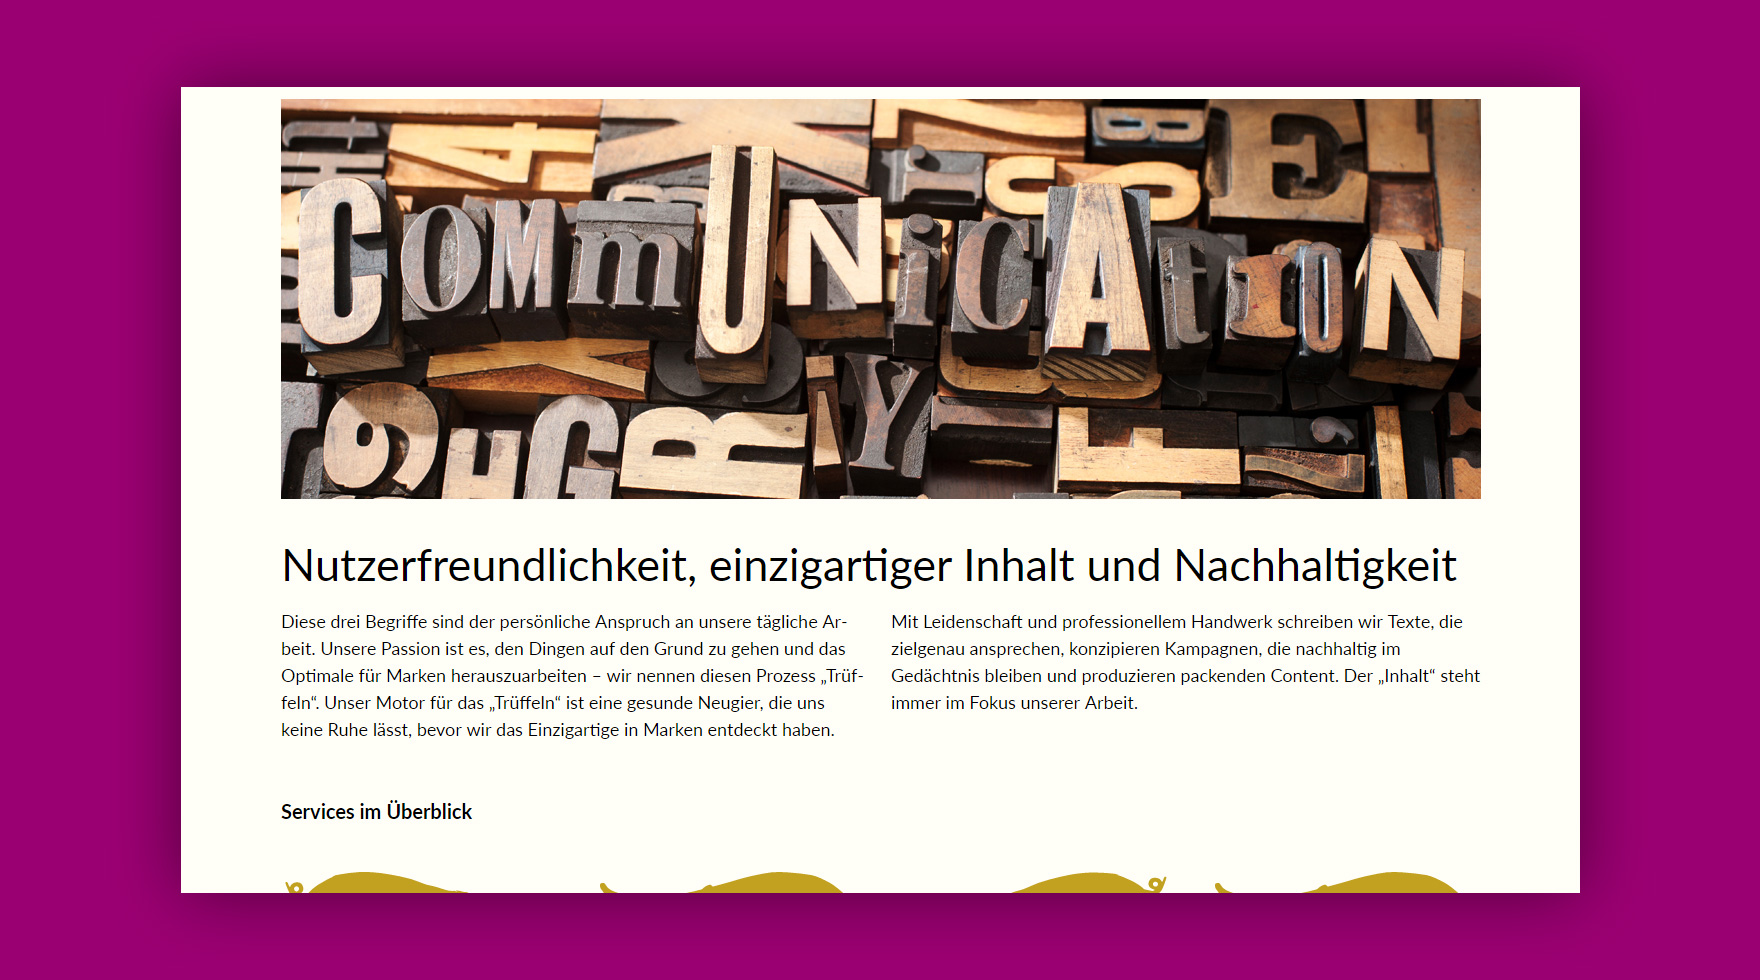 textkreation-berlin-website-agentur